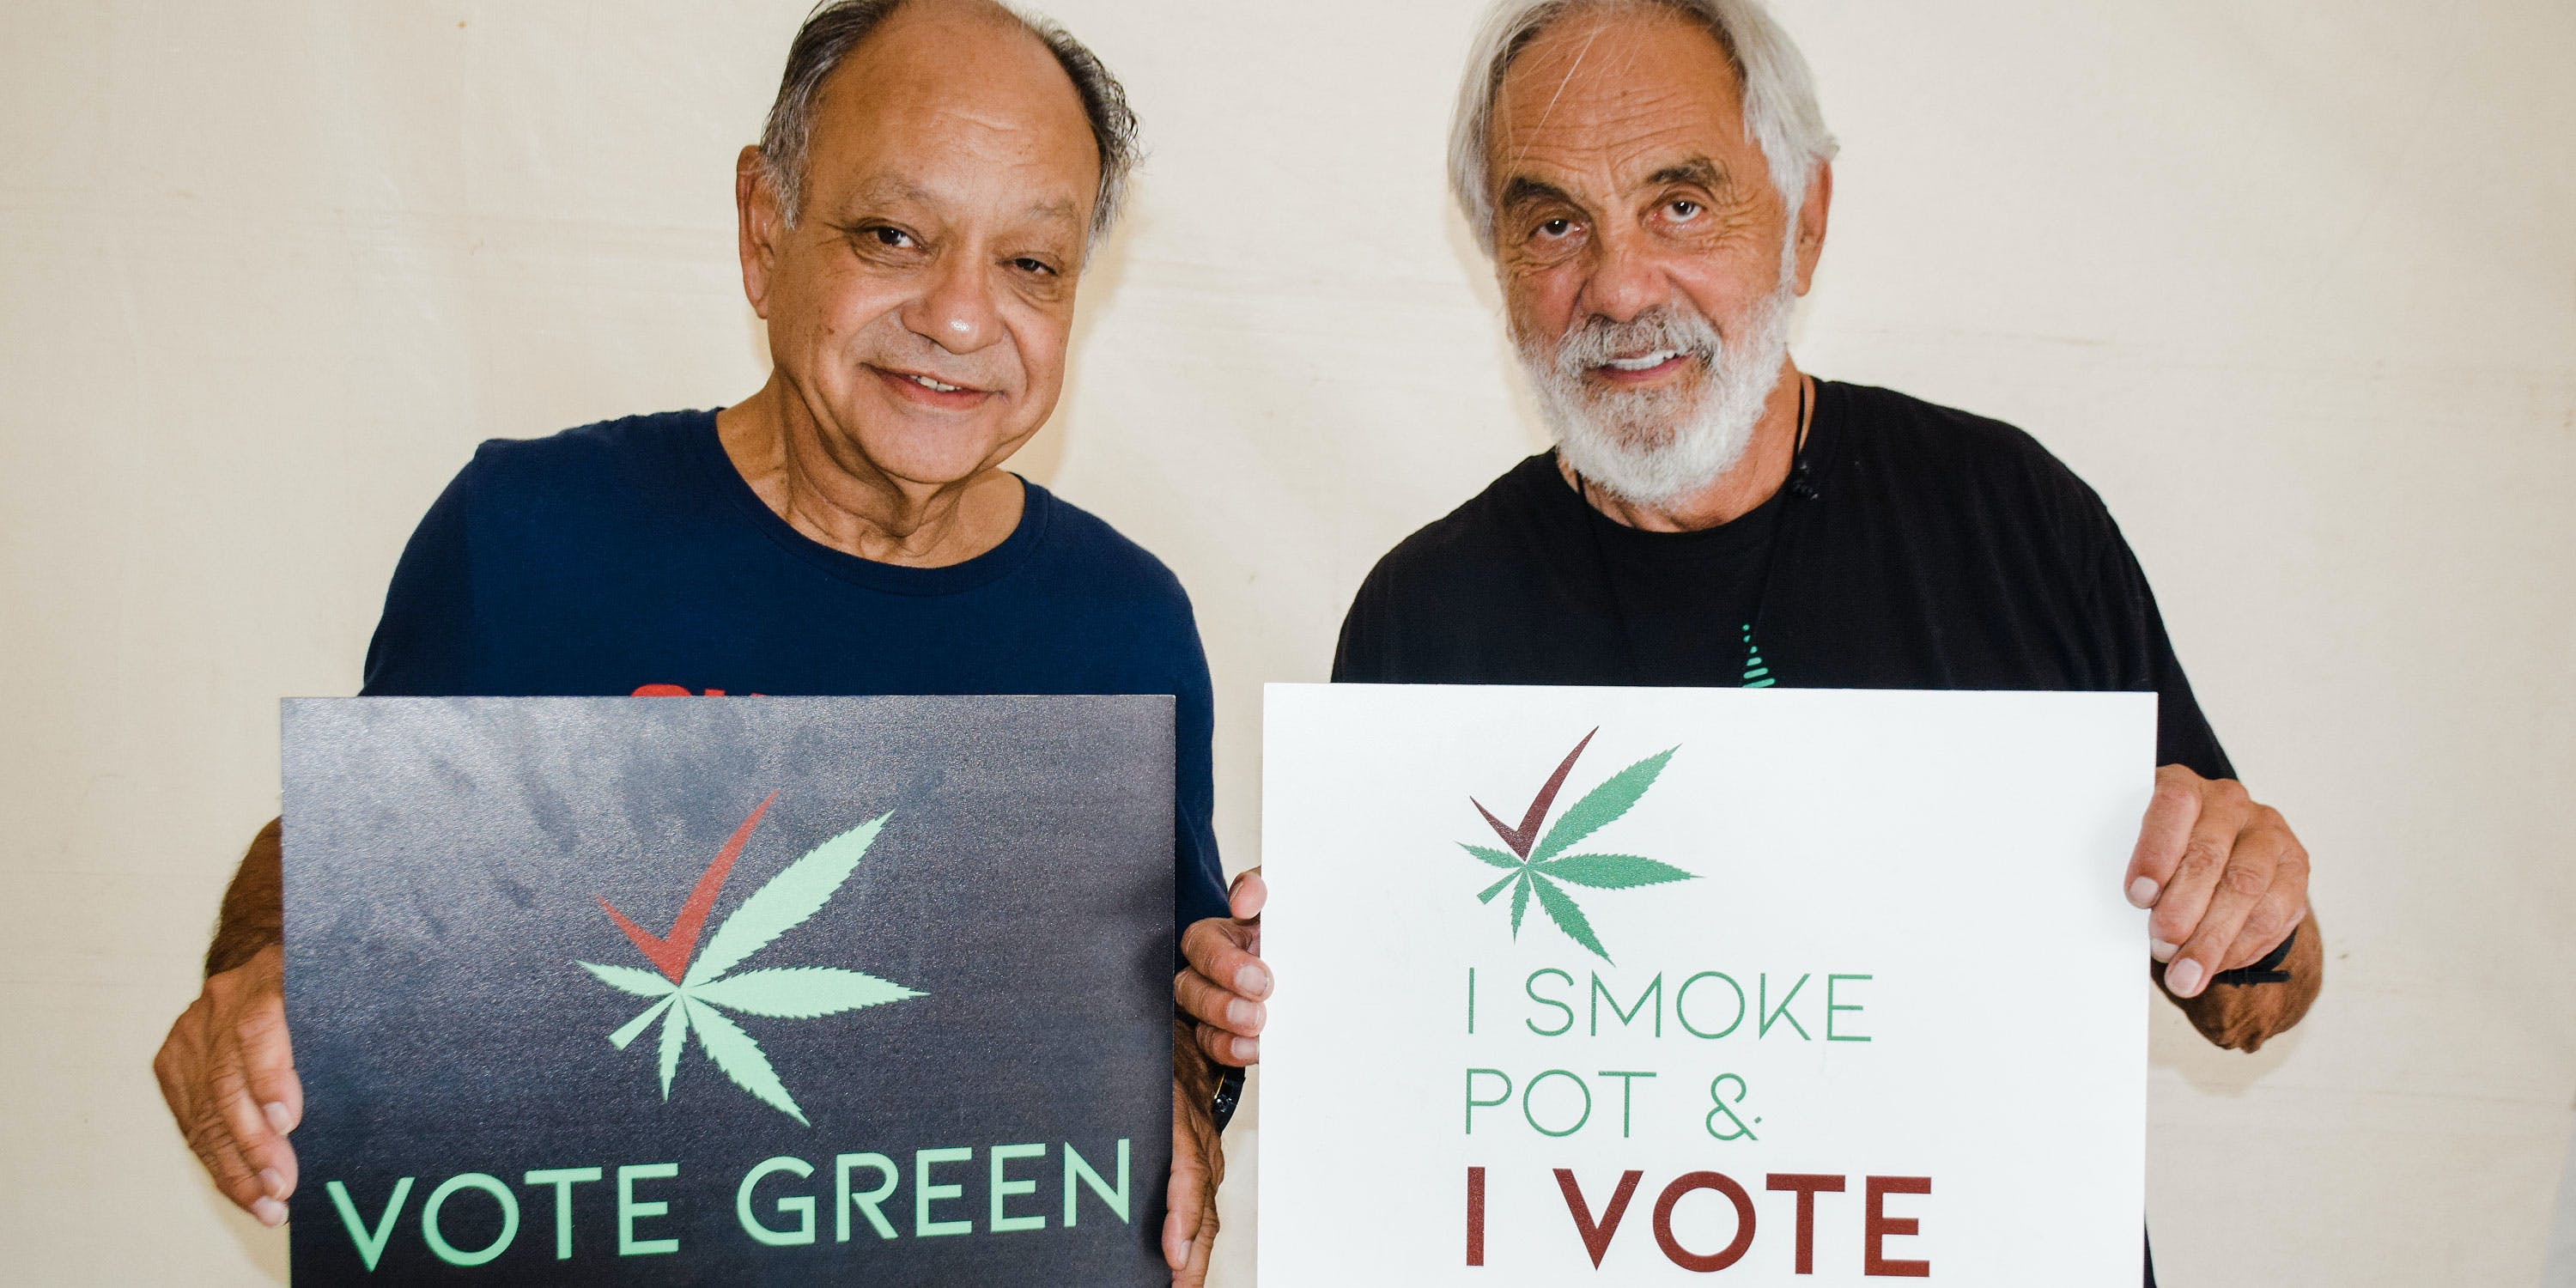 Cheech and Chong endorse the Cannabis Voter Project